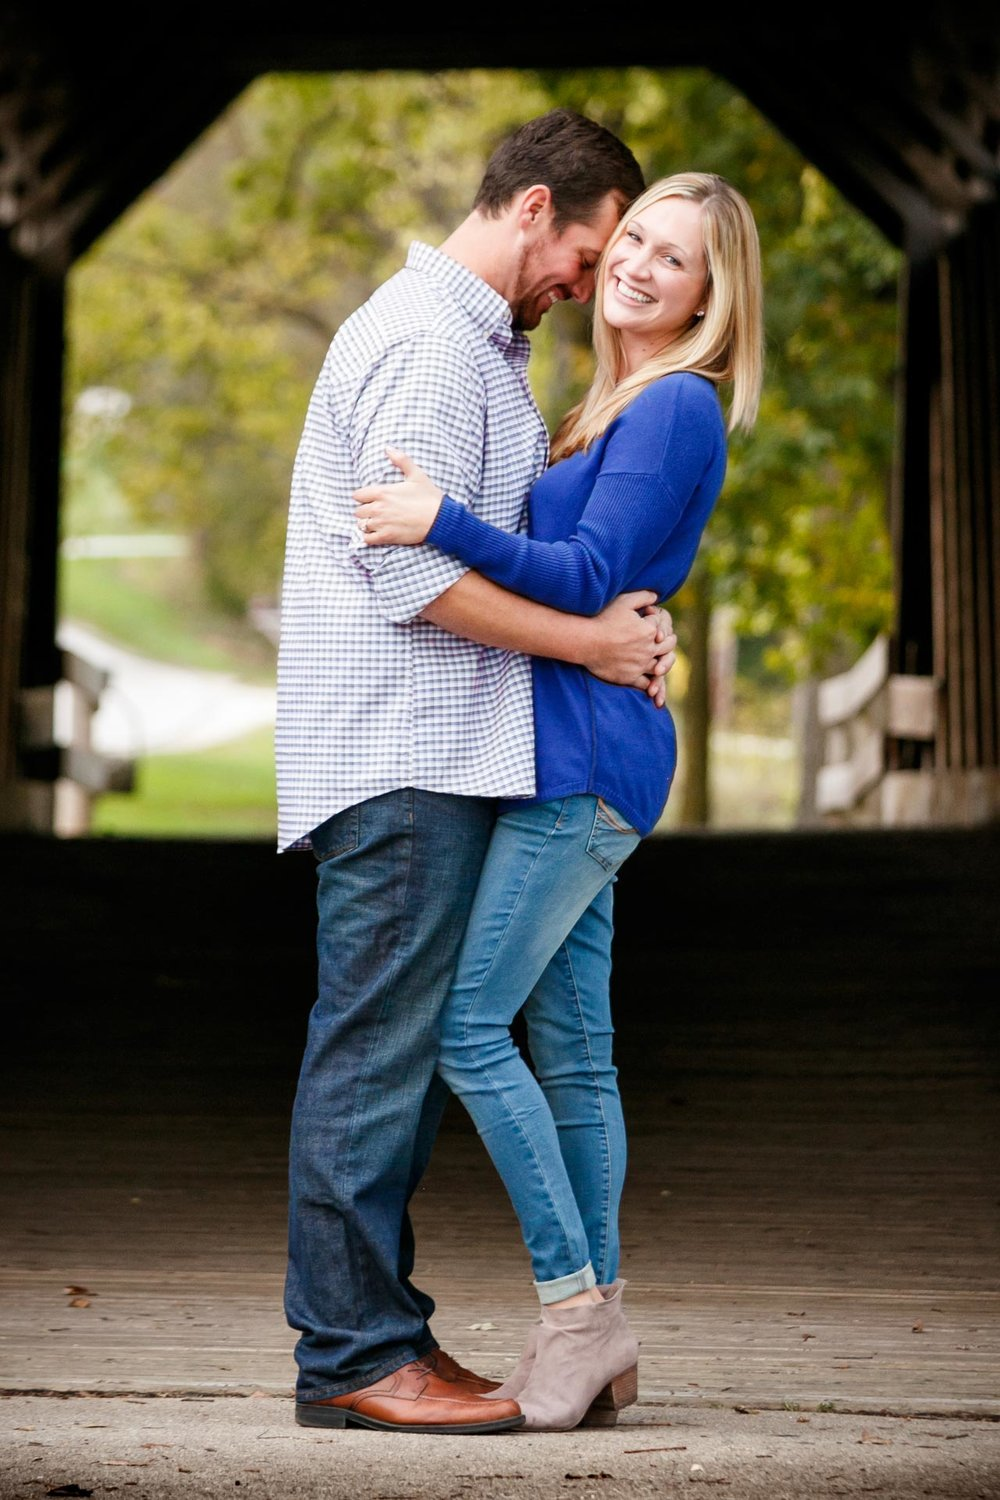 covered-bridge-park-wisconsin-engagement-adam-shea-photography-green-bay-appleton-neenah-photographer-6.jpg